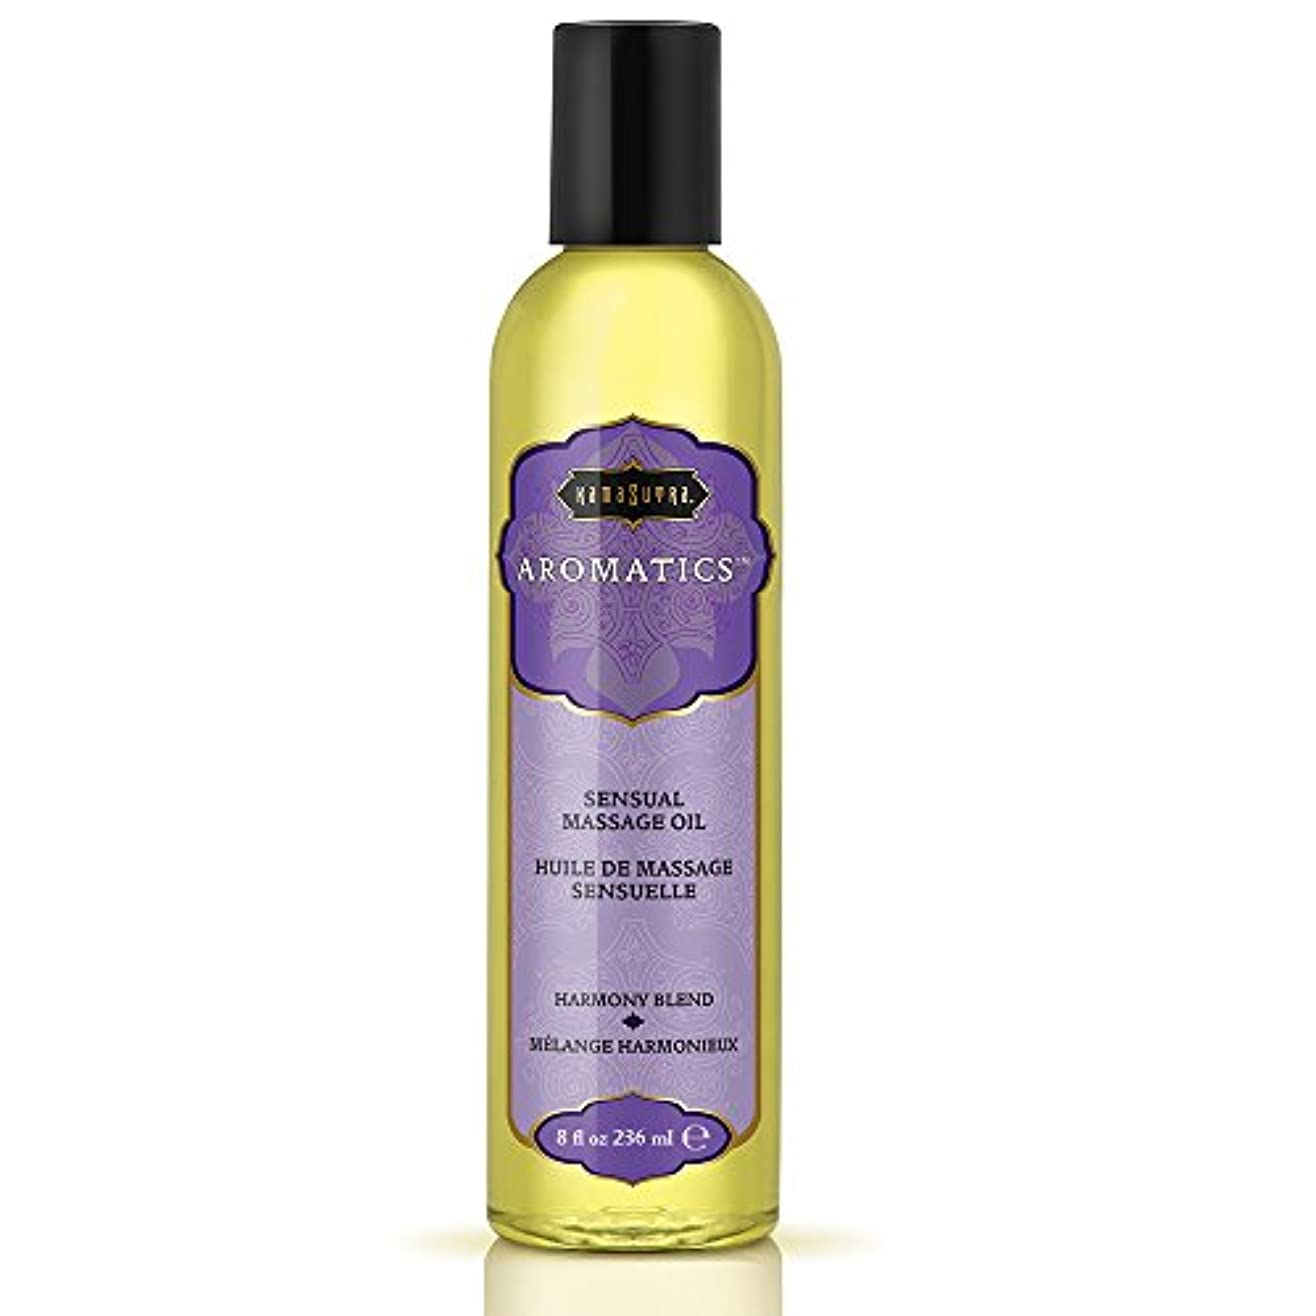 Aromatic Massage Oil Harmony Blend 8oz by Kama Sutra